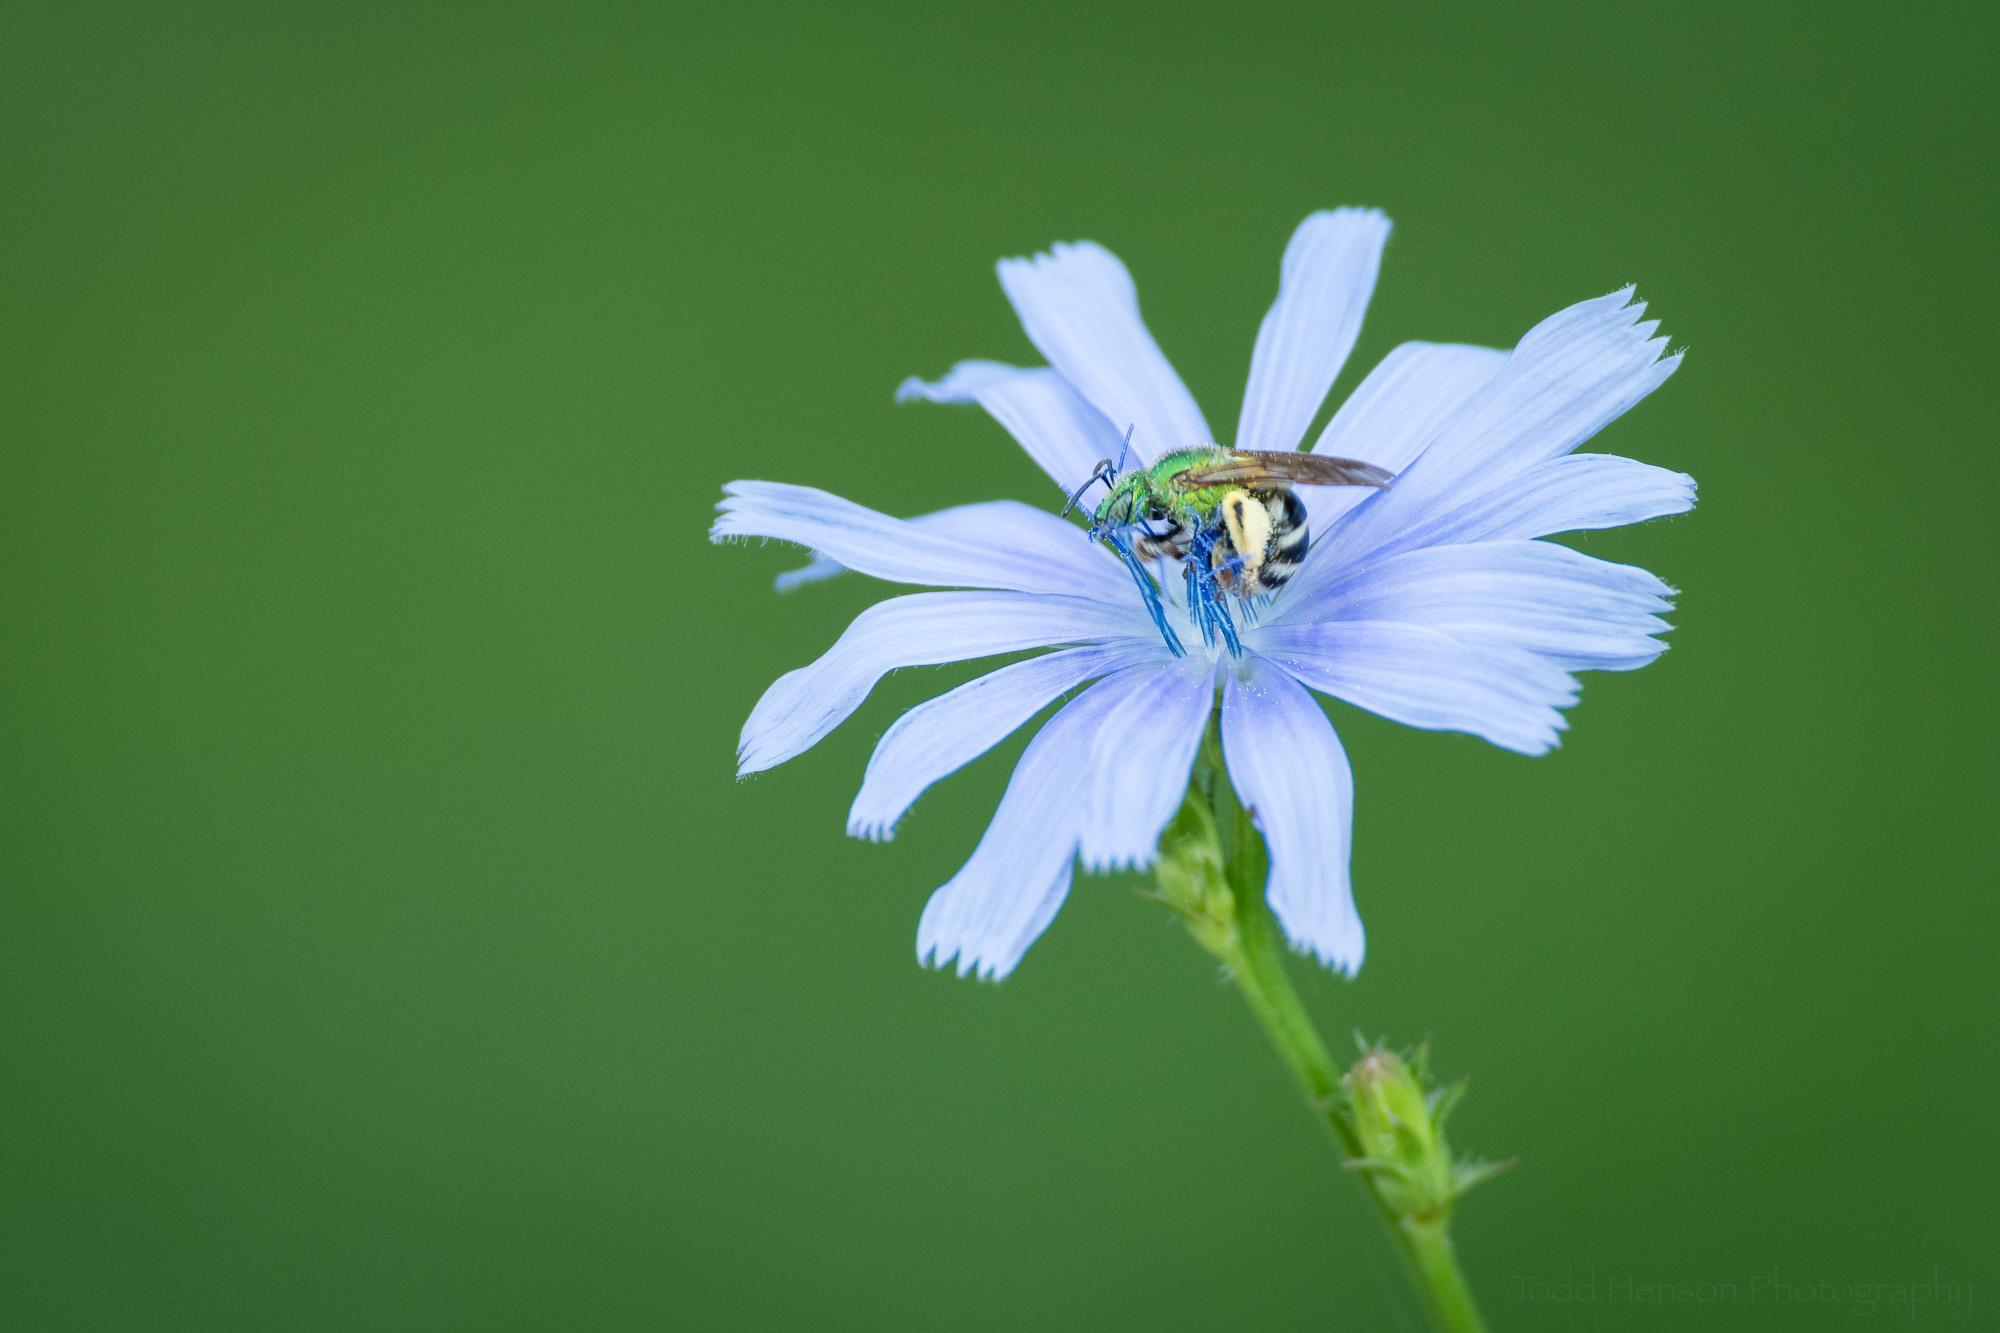 Green bee on a blue chicory flower with a green background.